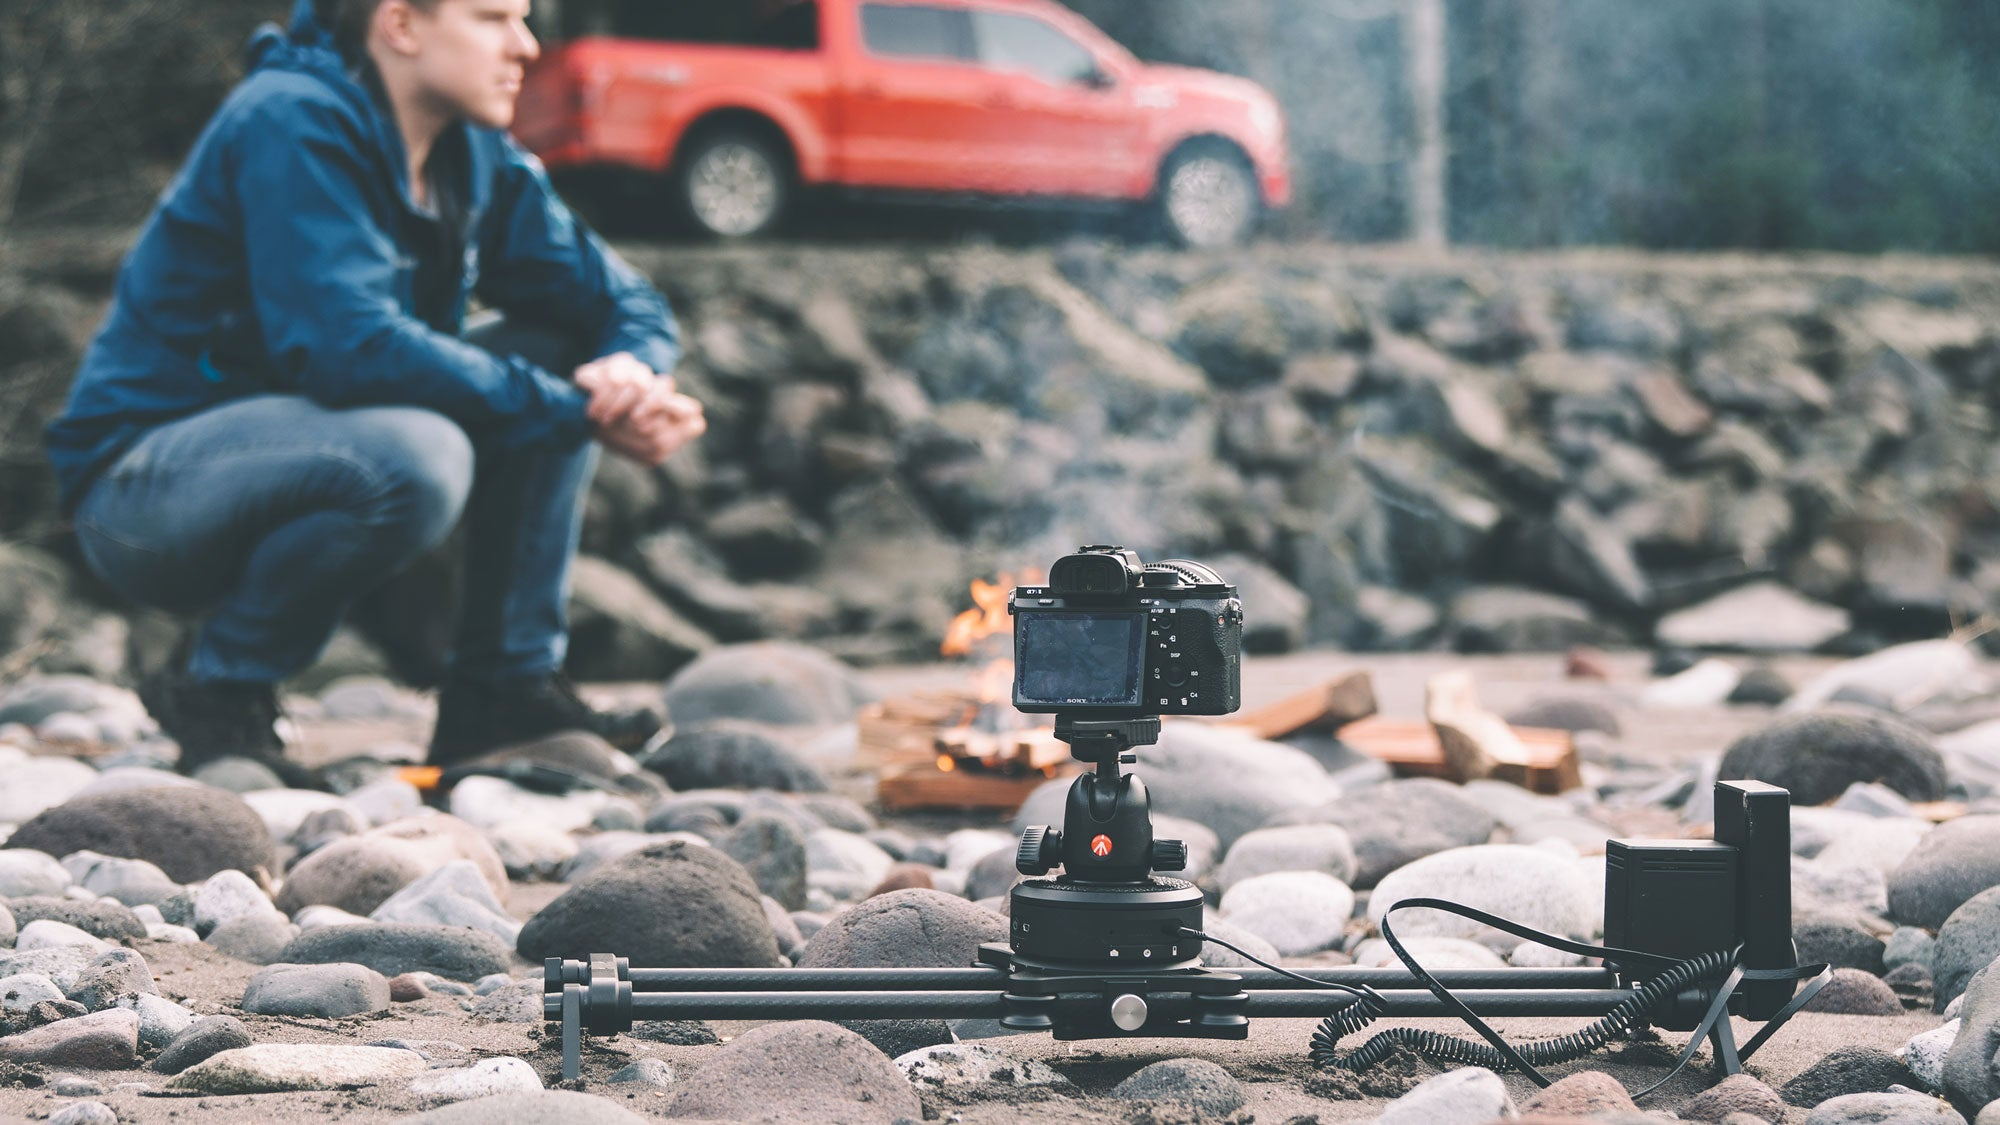 MWR: Top 5 Camera Gear for Cinematic Short